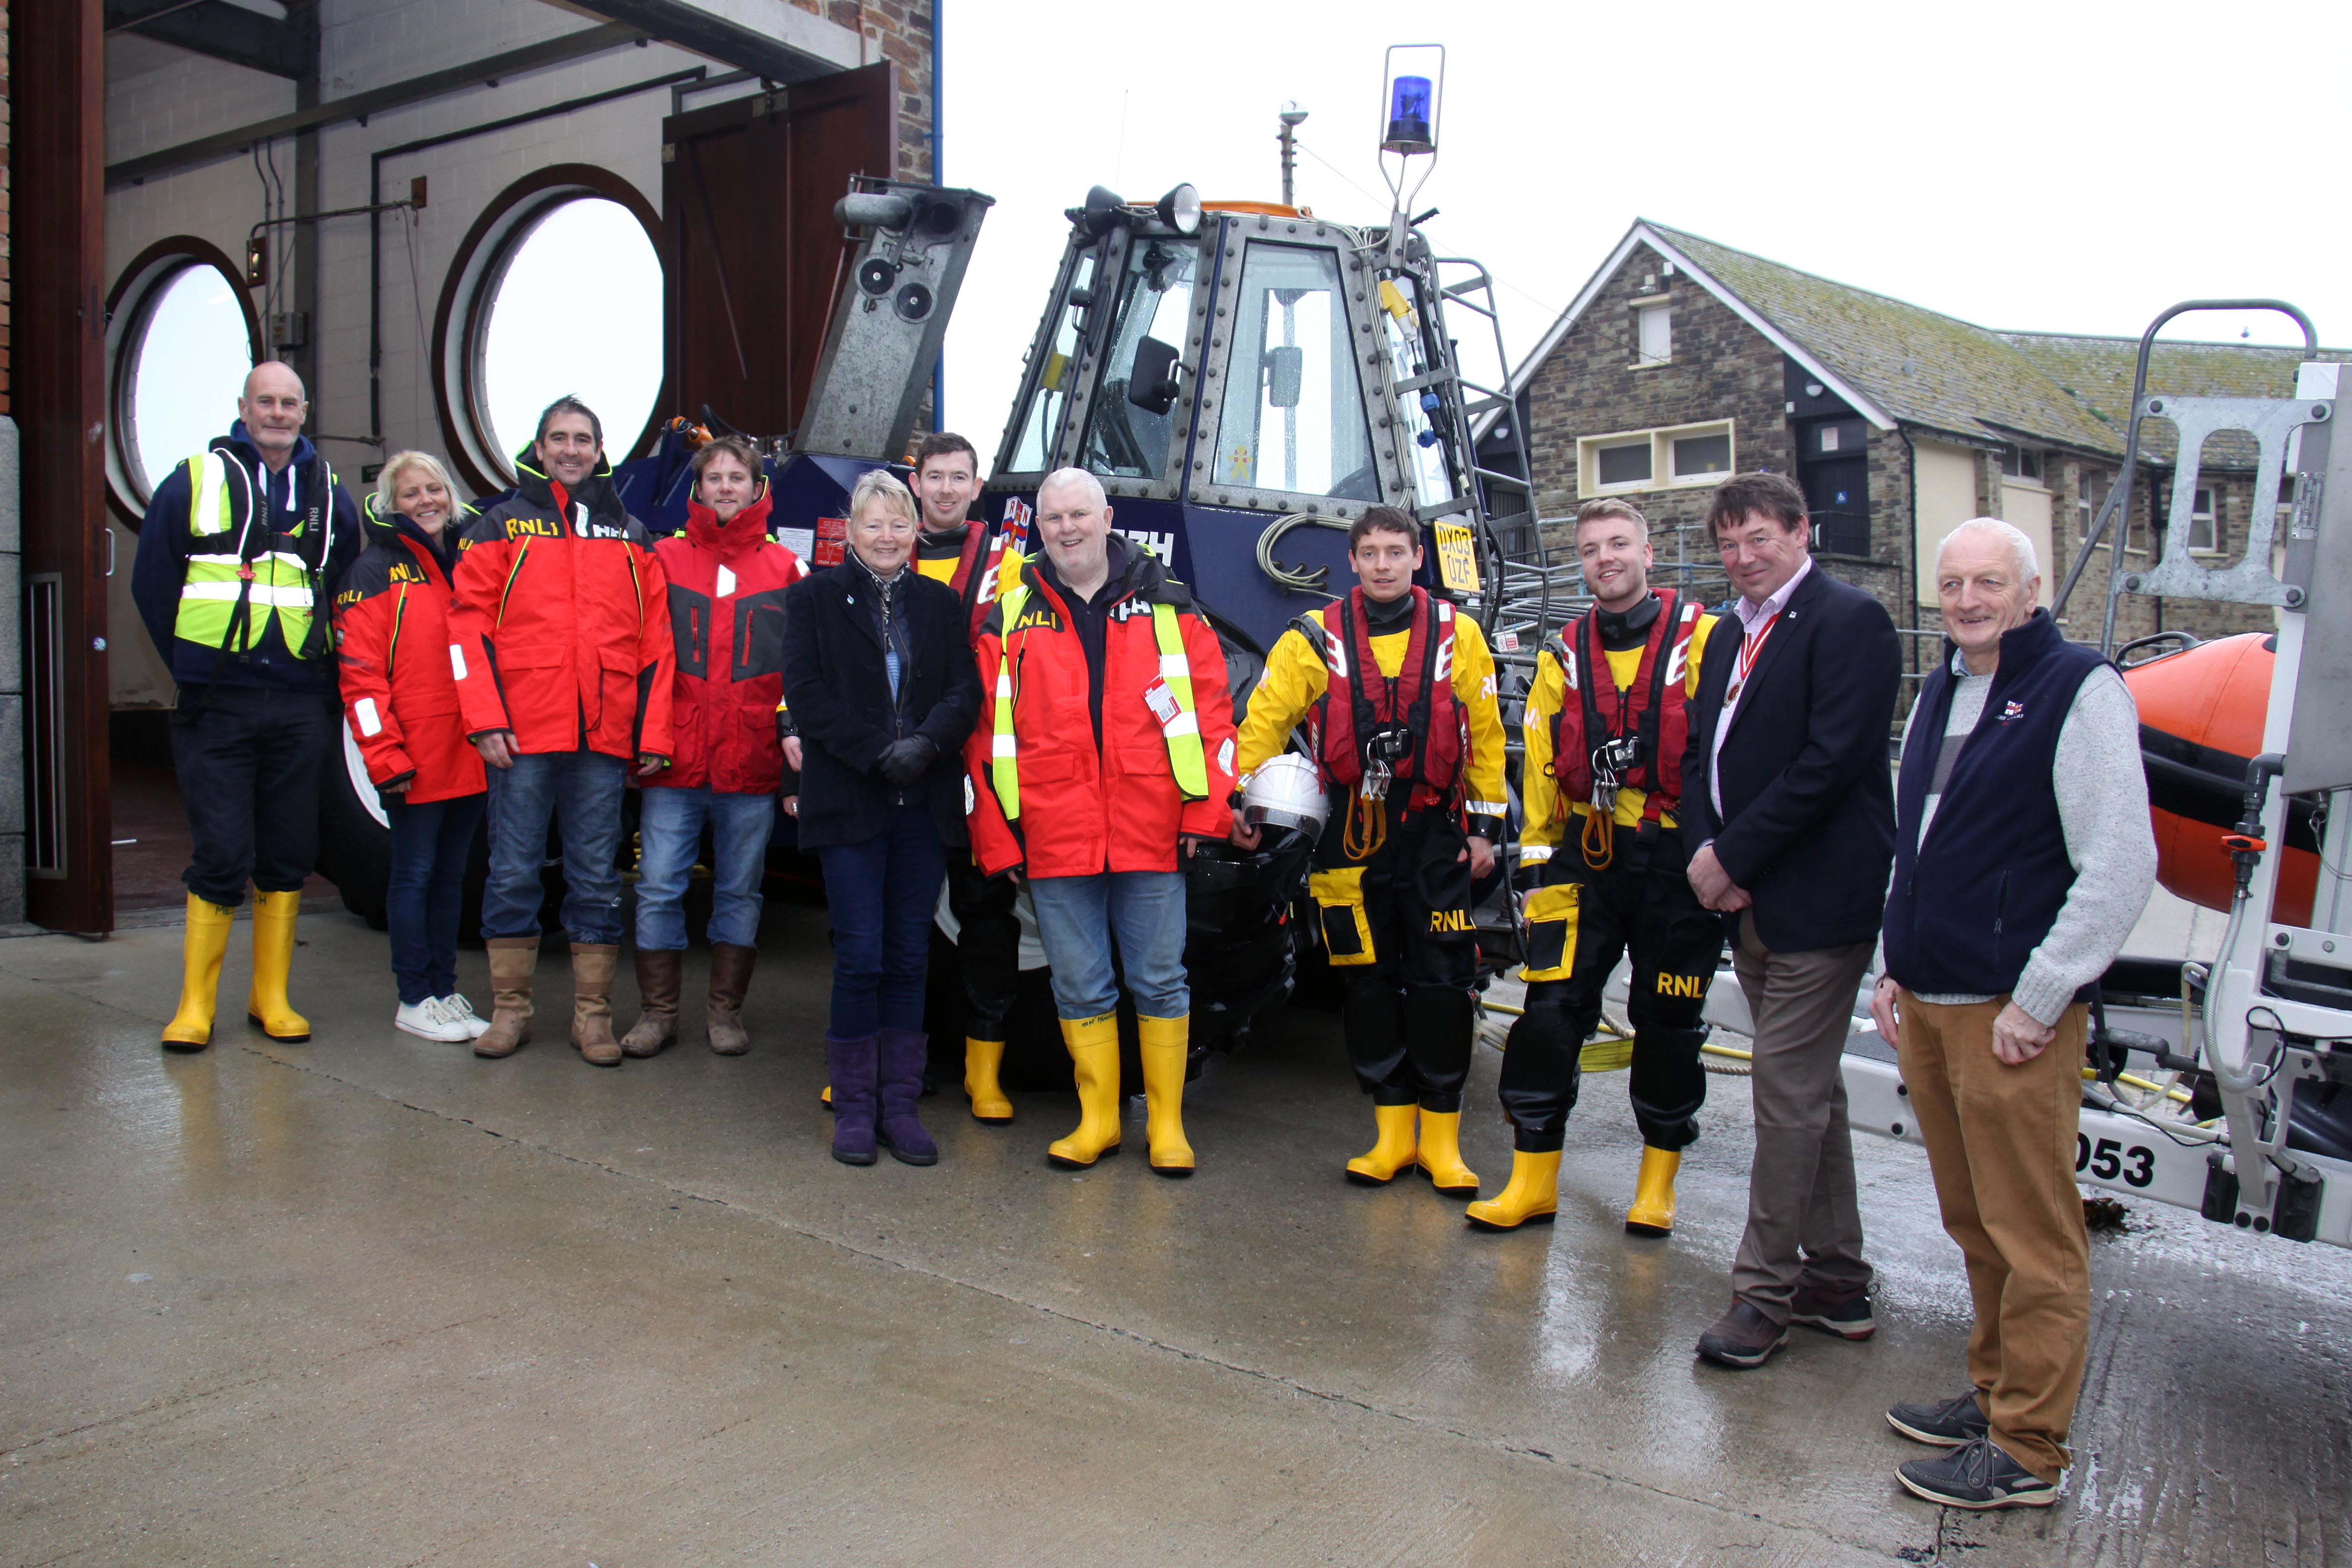 The High Sheriff of Cornwall Paul Young-Jamieson and Claire Young-Jamieson with Looe RNLI volunteer crew